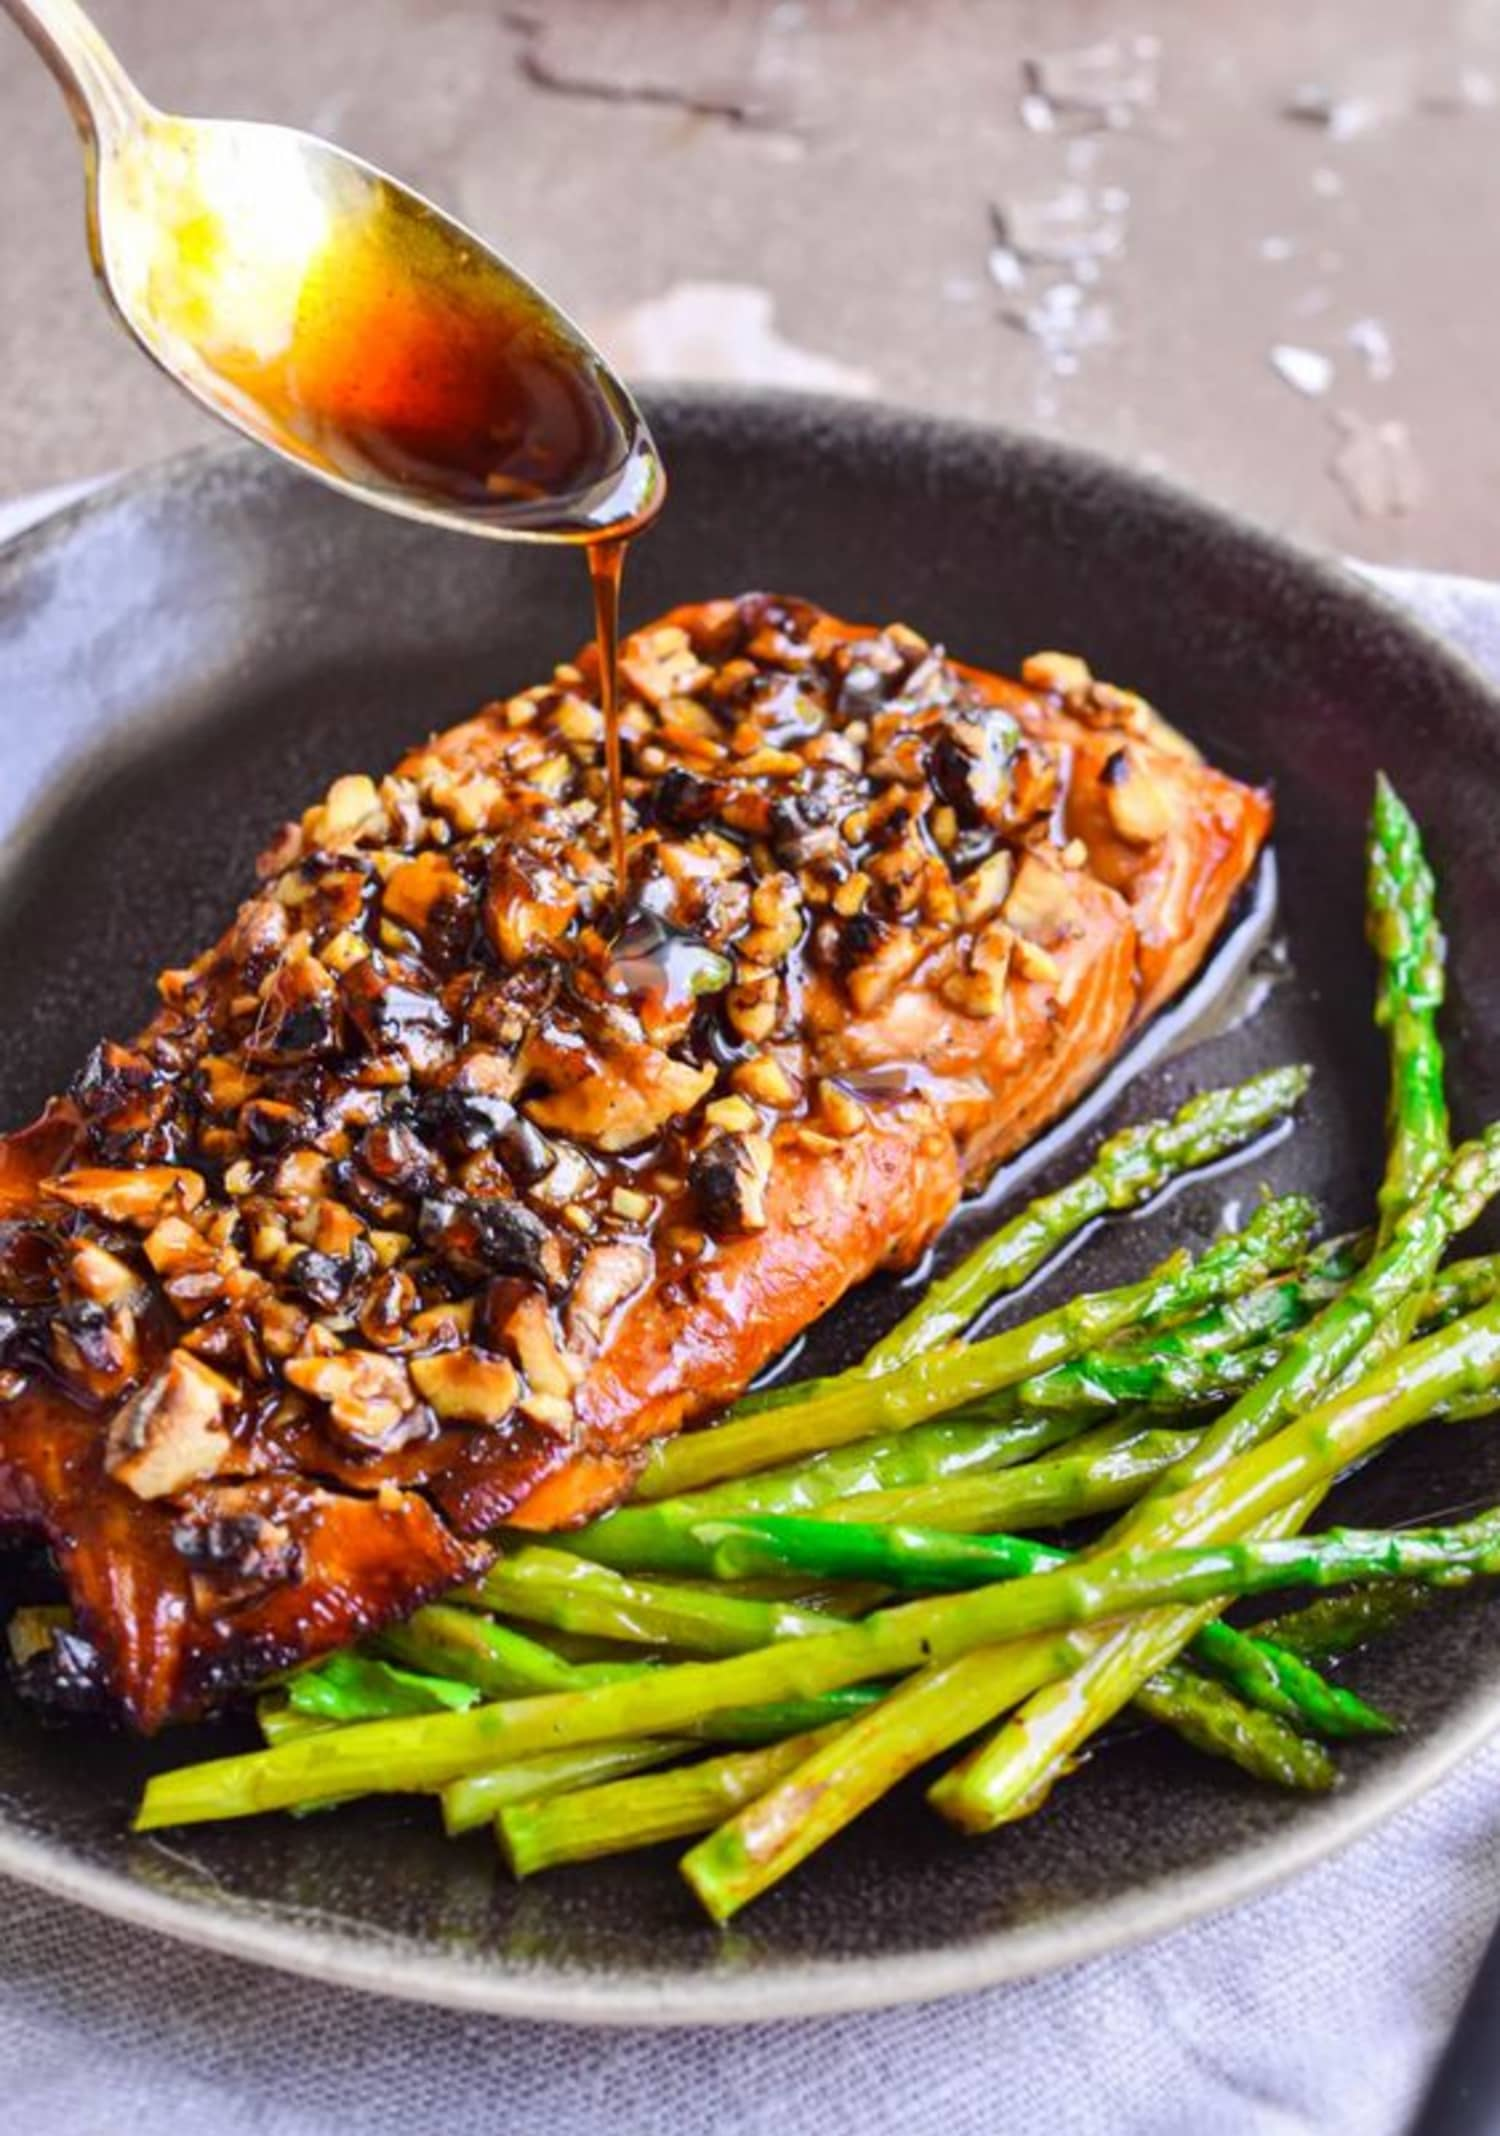 This Bourbon Brown Sugar Salmon Tastes as Delicious as It Looks